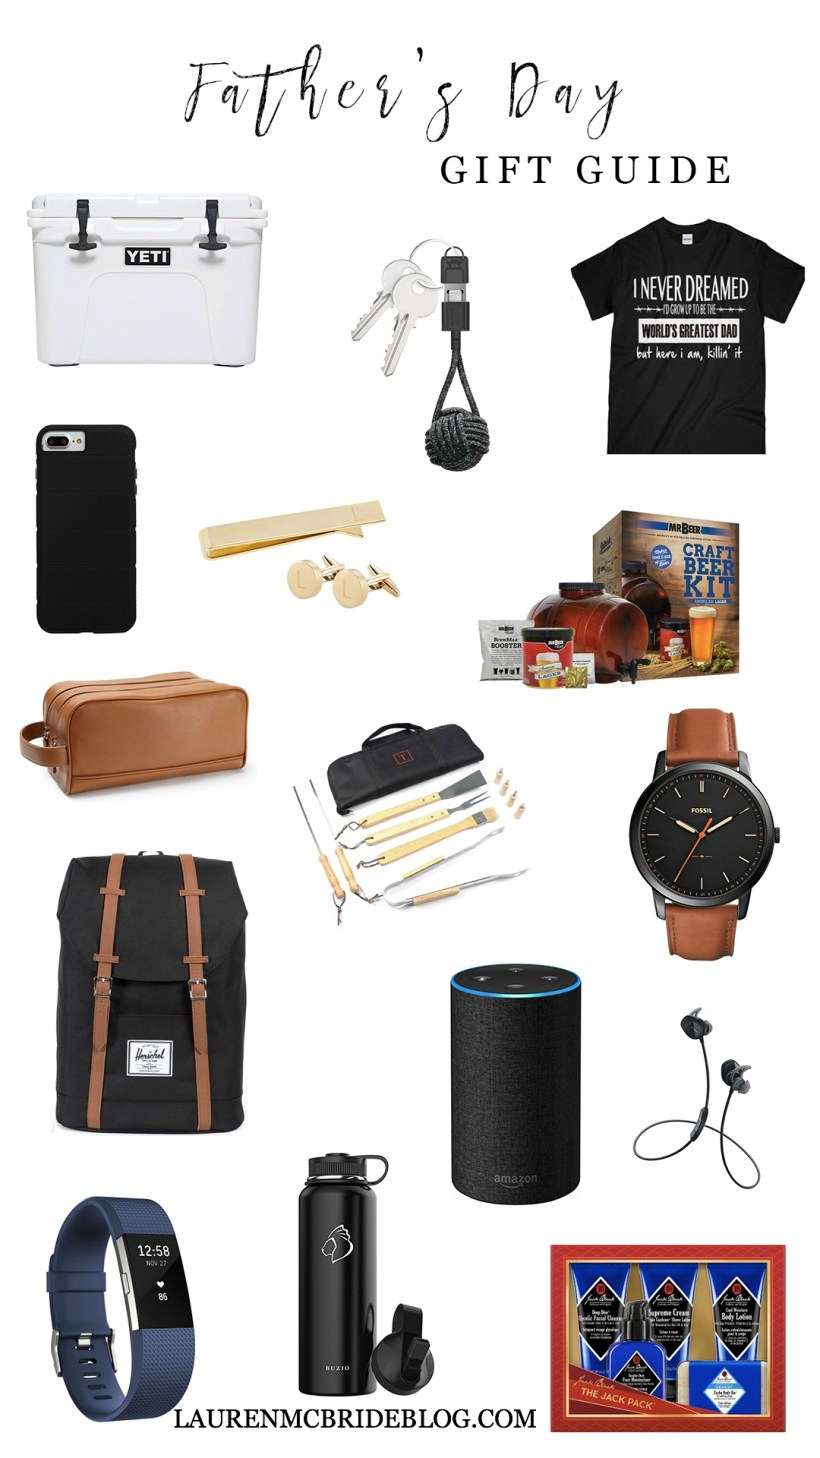 Life and style blogger Lauren McBride shares a Father's Day Gift Guide featuring a wide variety of items and prices for the athlete, grill master, business man, and more.